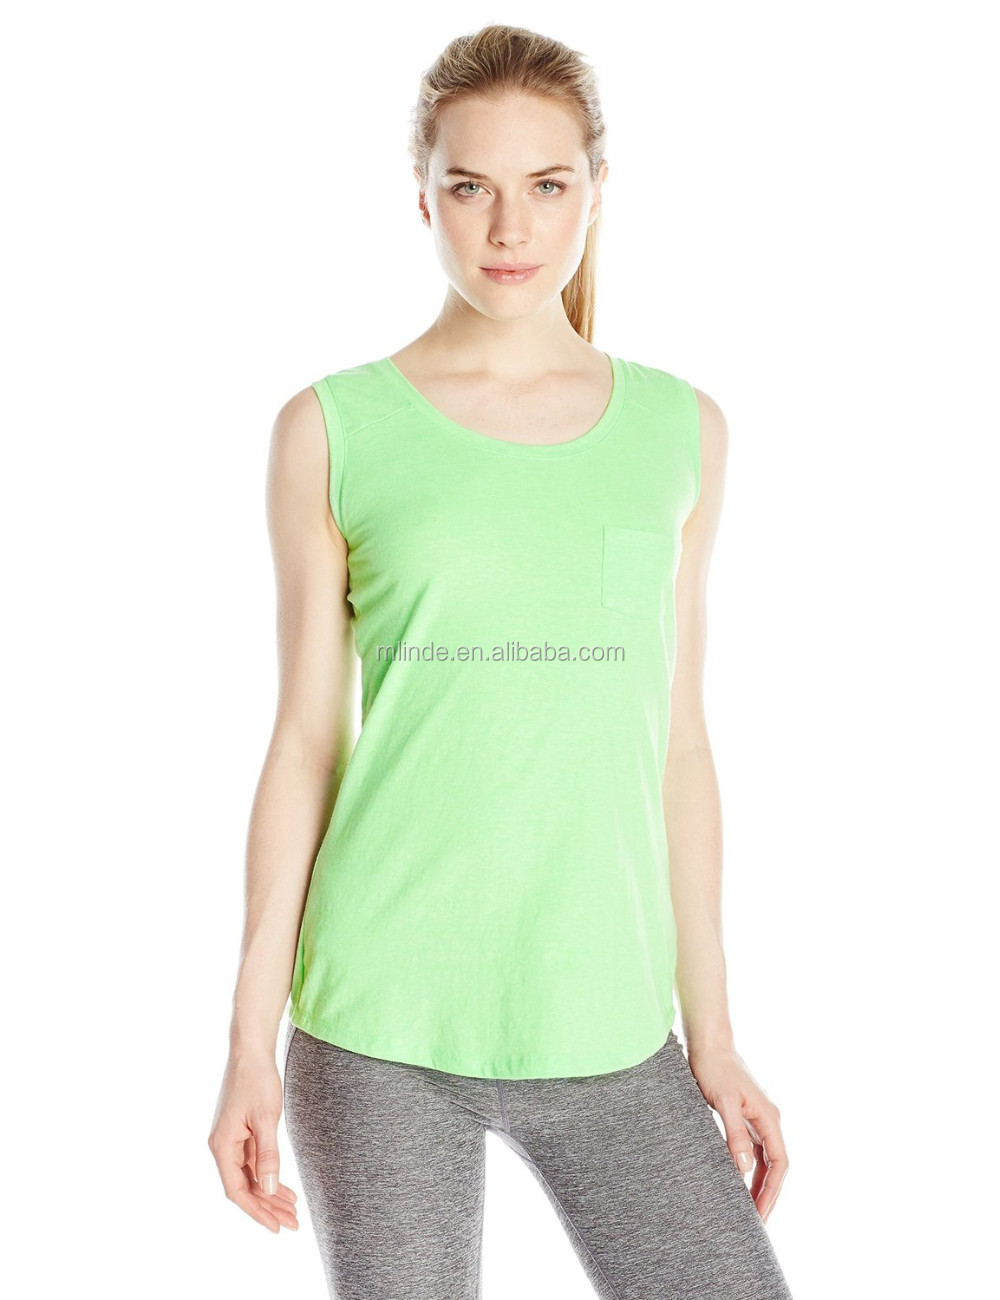 46334273a03 Womens Tank Tops Wholesale